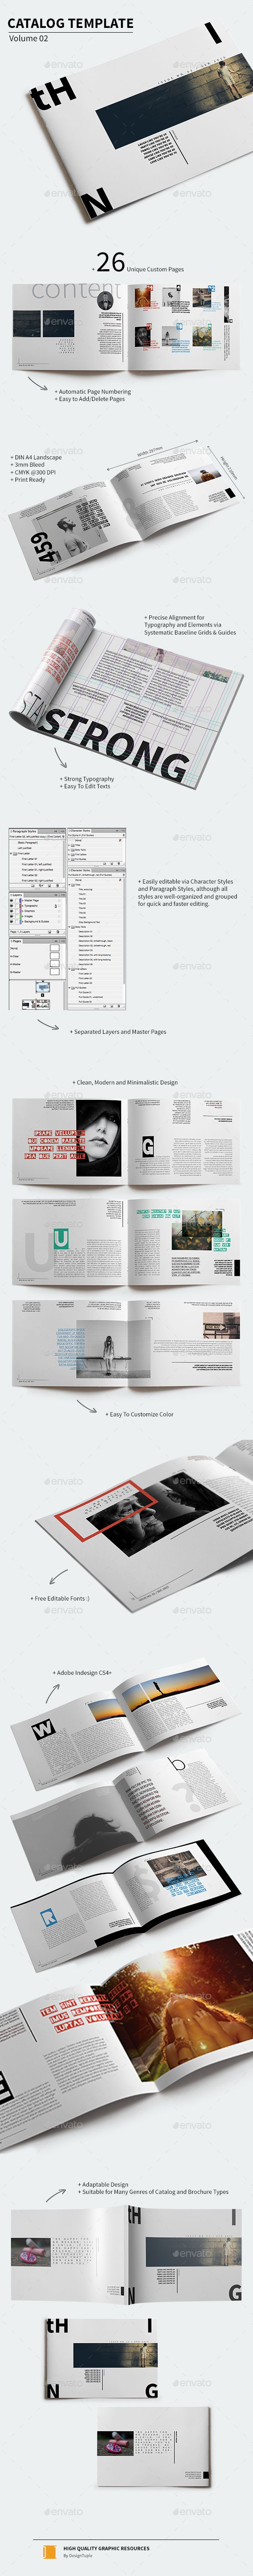 Catalog Brochure Template #design                                                                                                                                                                                 More